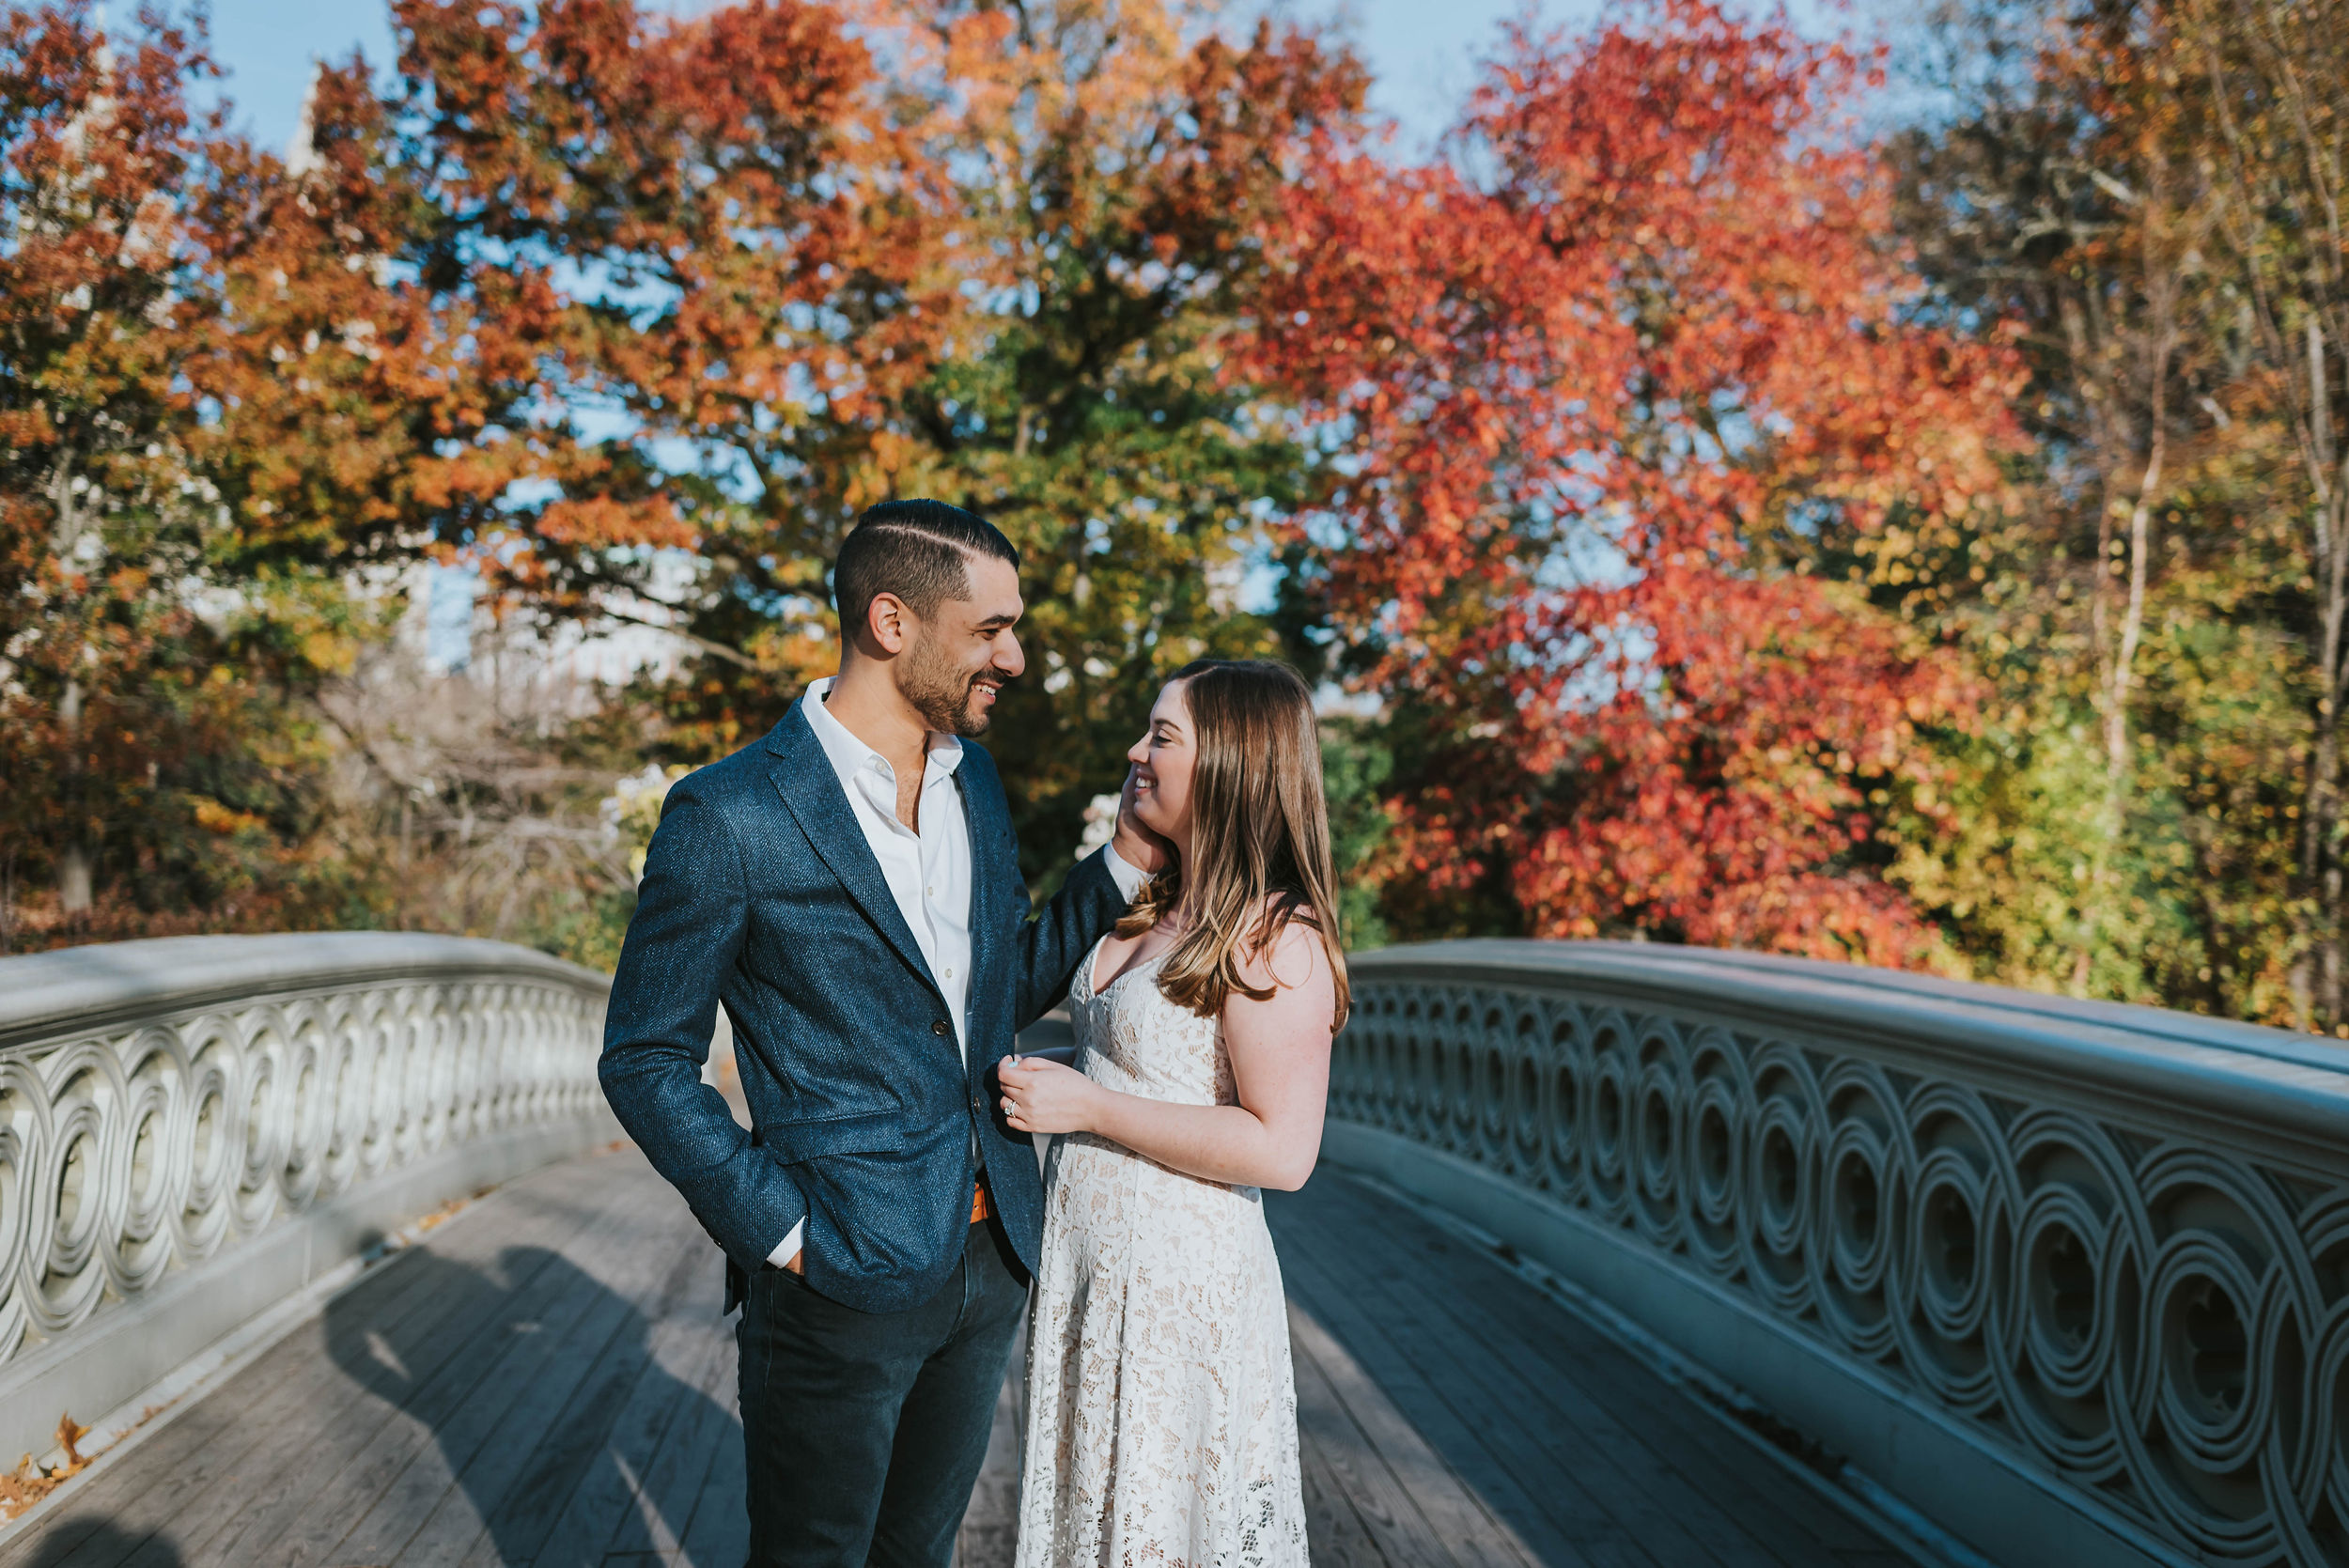 Rebecca and Darryn - Central Park Elopement NYC Manhattan 18.jpg